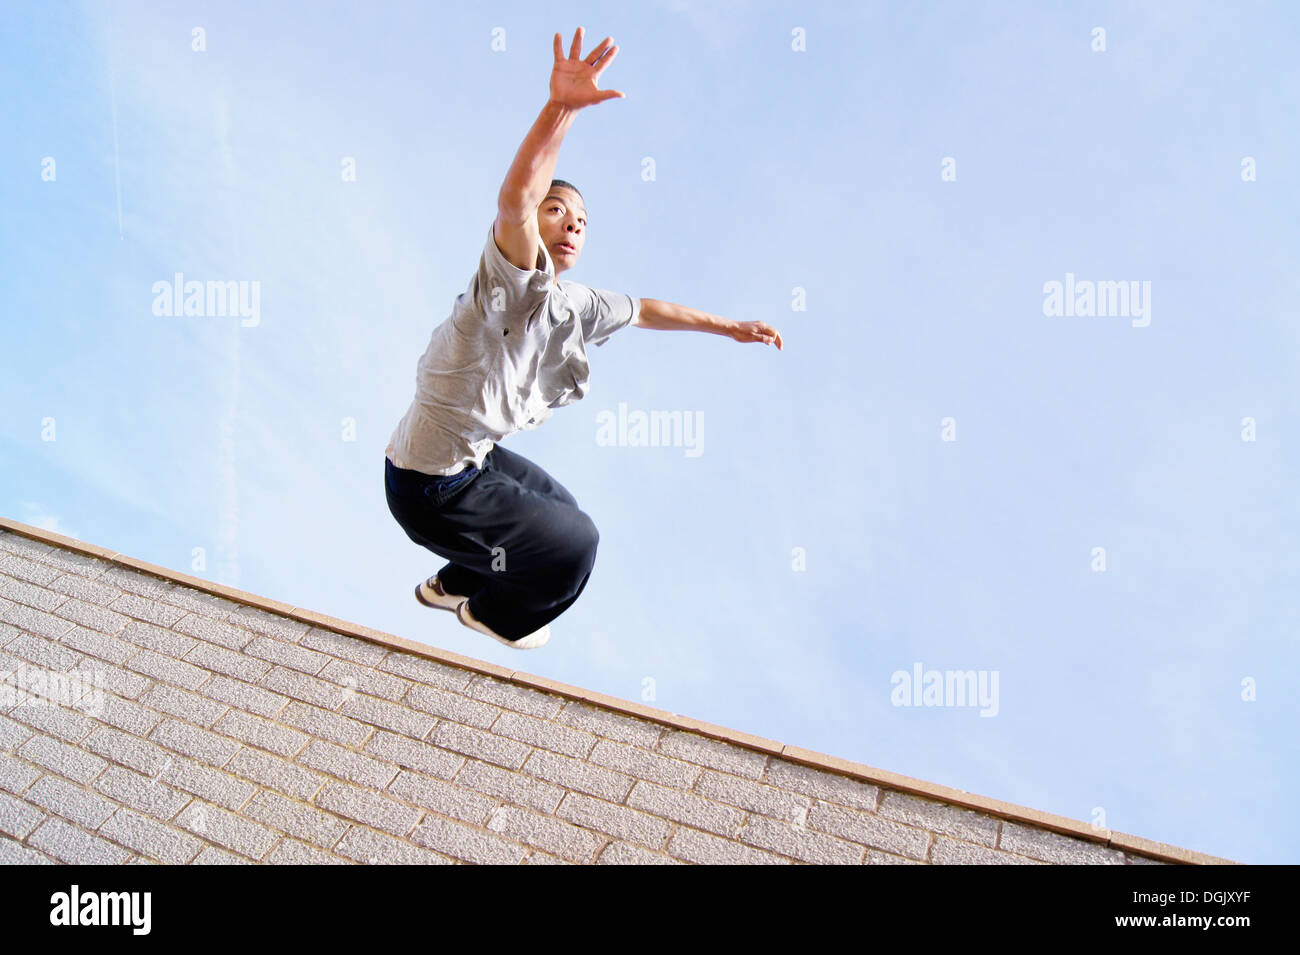 A parkour athlete leaping over a wall. - Stock Image